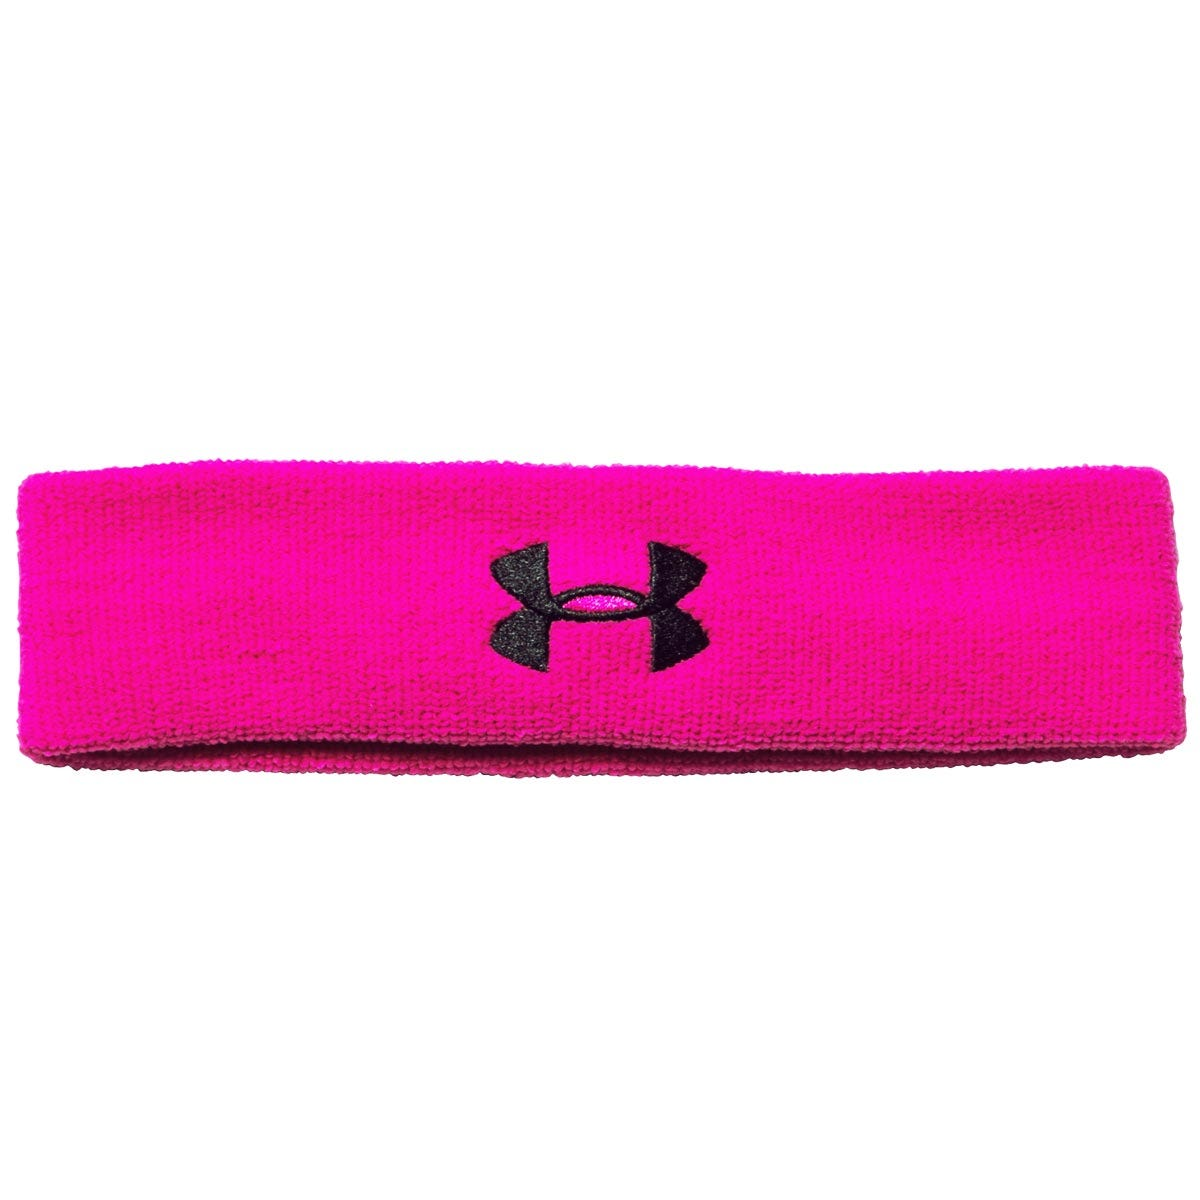 Under Armour 'Power in Pink' Headband